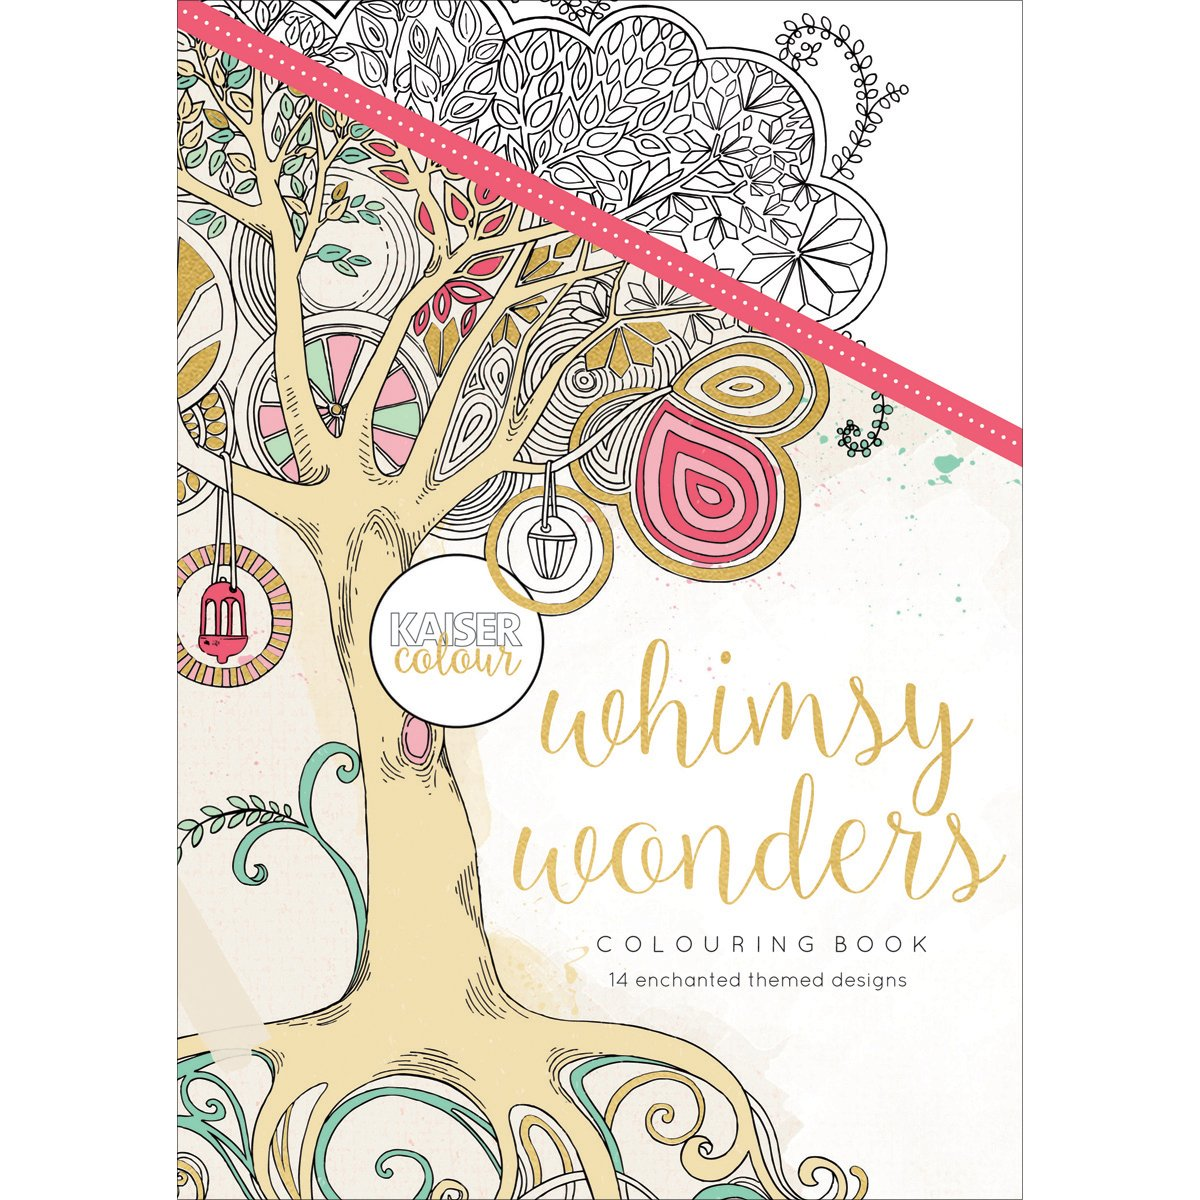 Kaisercolour Coloring Book-Whimsy Wonders Kaisercraft 523489